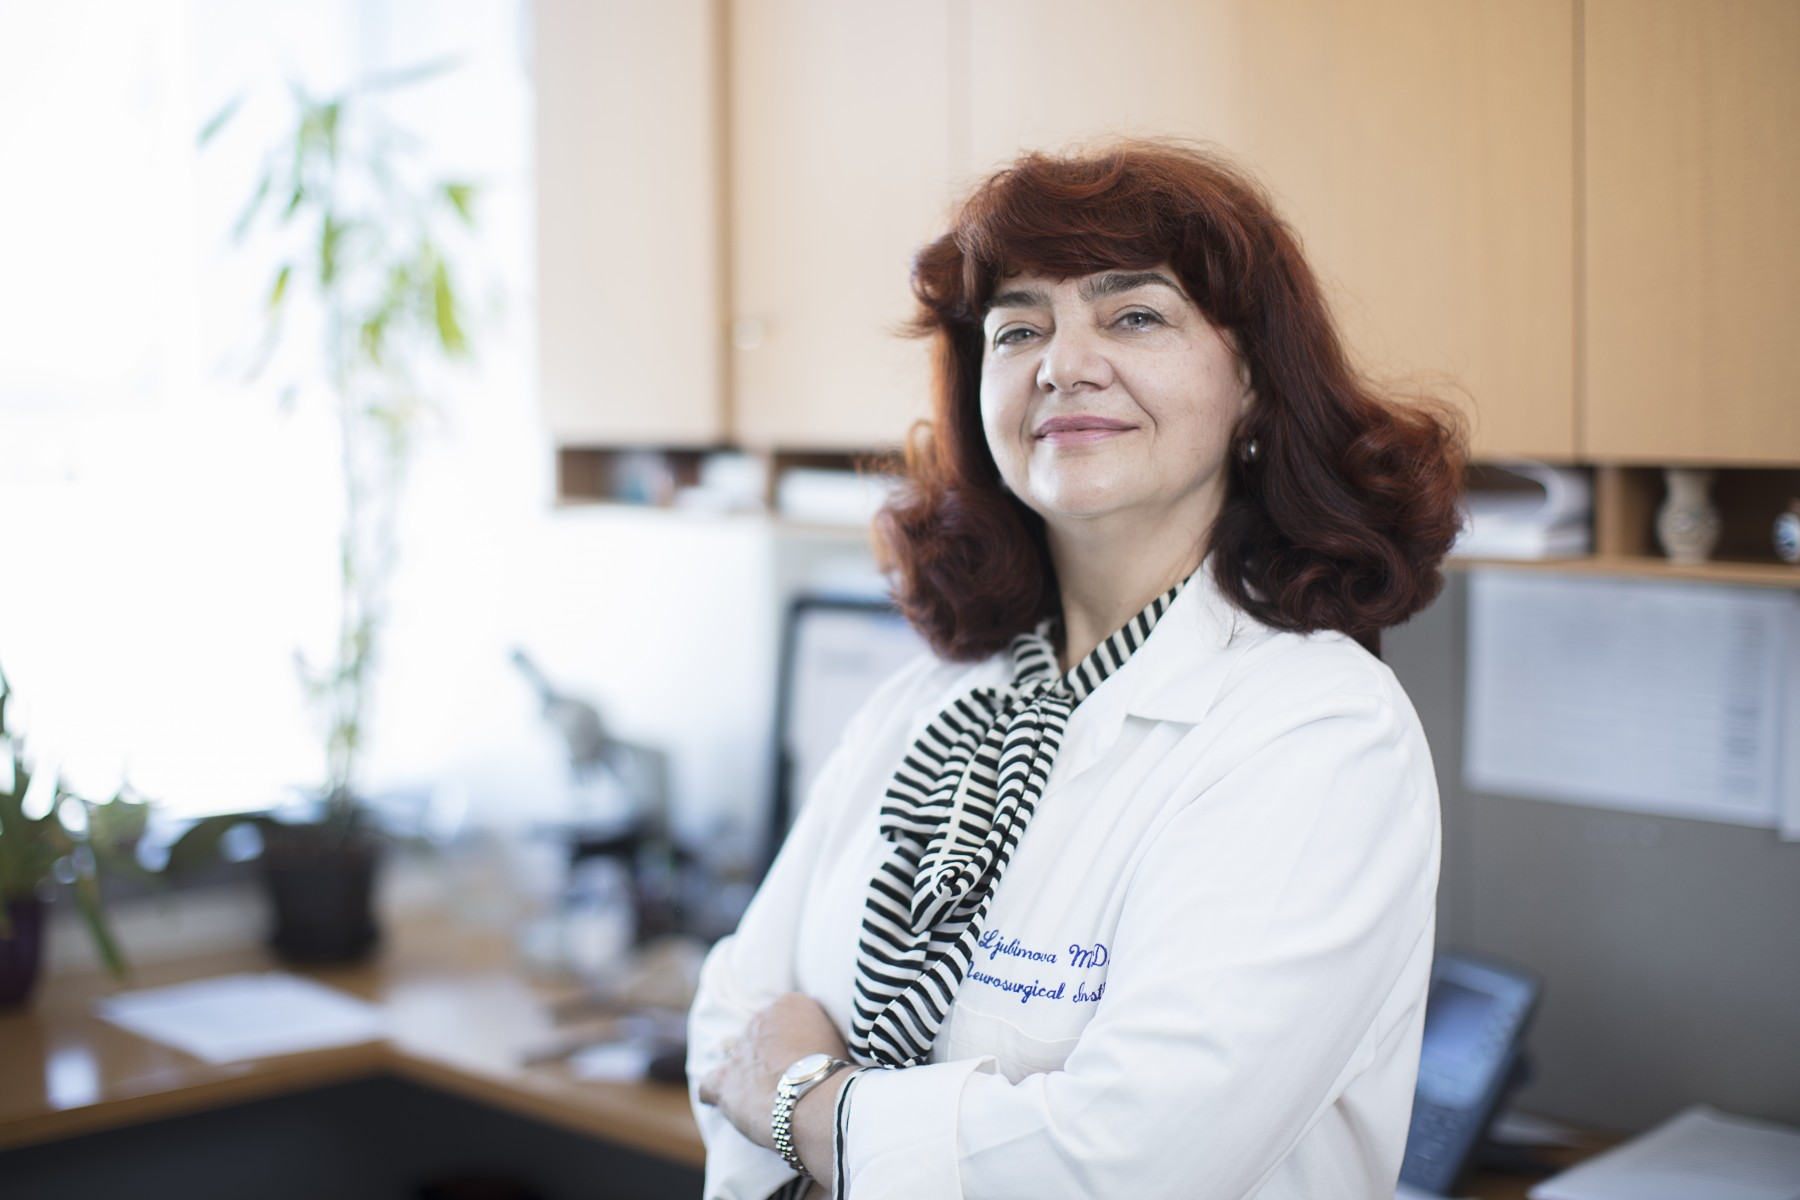 A new study led by Julia Ljubimova, MD, PhD, could help scientists develop immunotherapies for brain tumors. Photo by Cedars-Sinai.